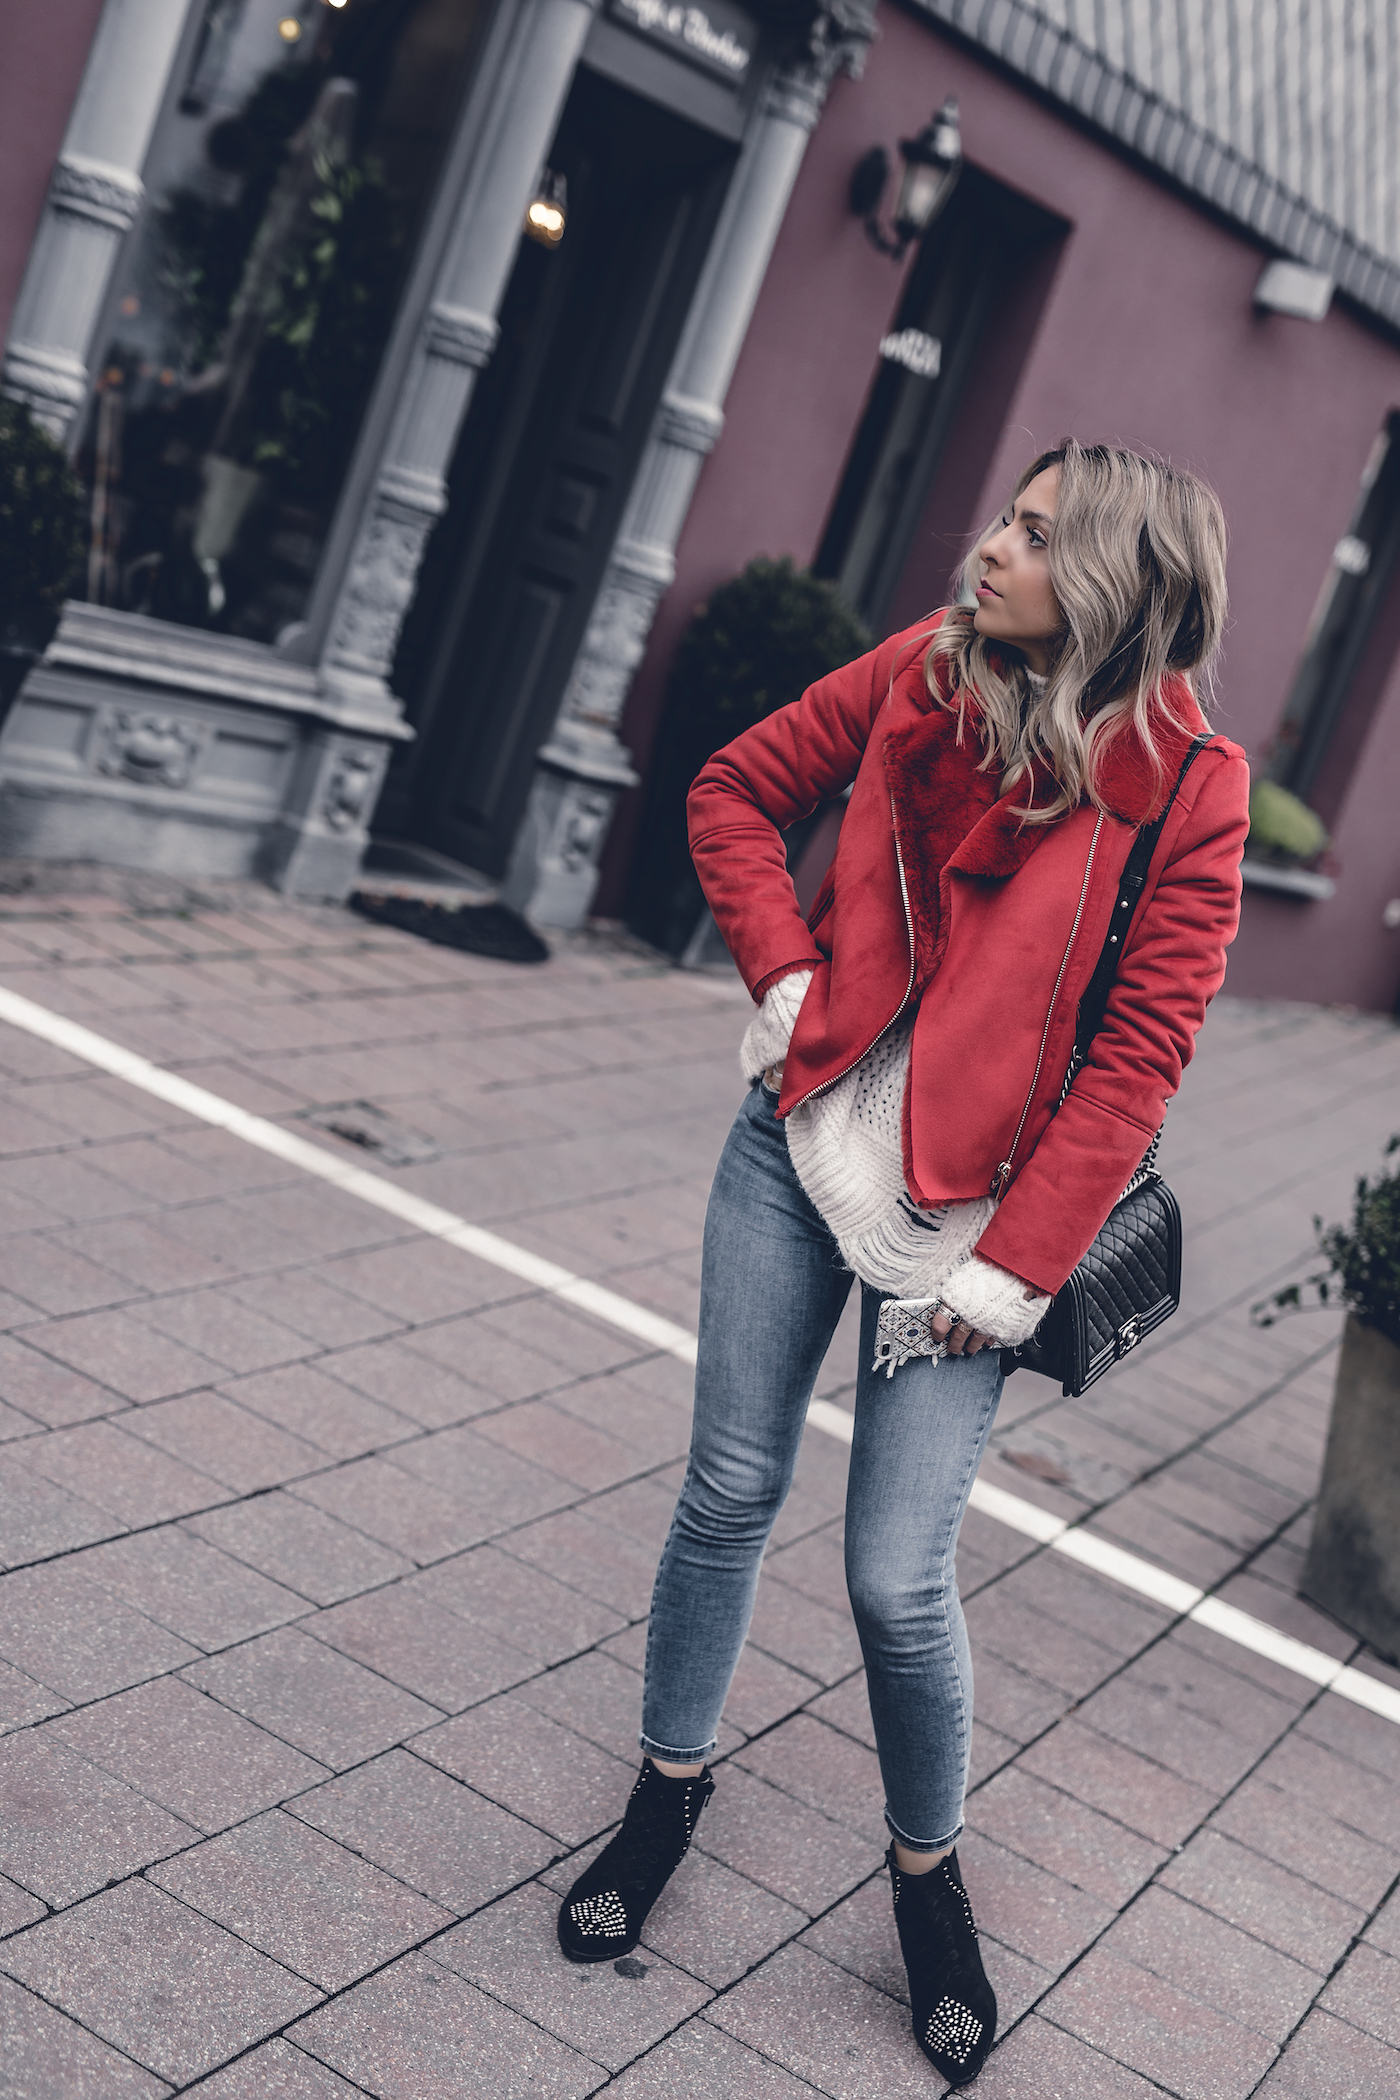 Red Jacket River Island Outfit 2017 Street Style Winter Casual Look | Want Get Repeat Fashion Blog